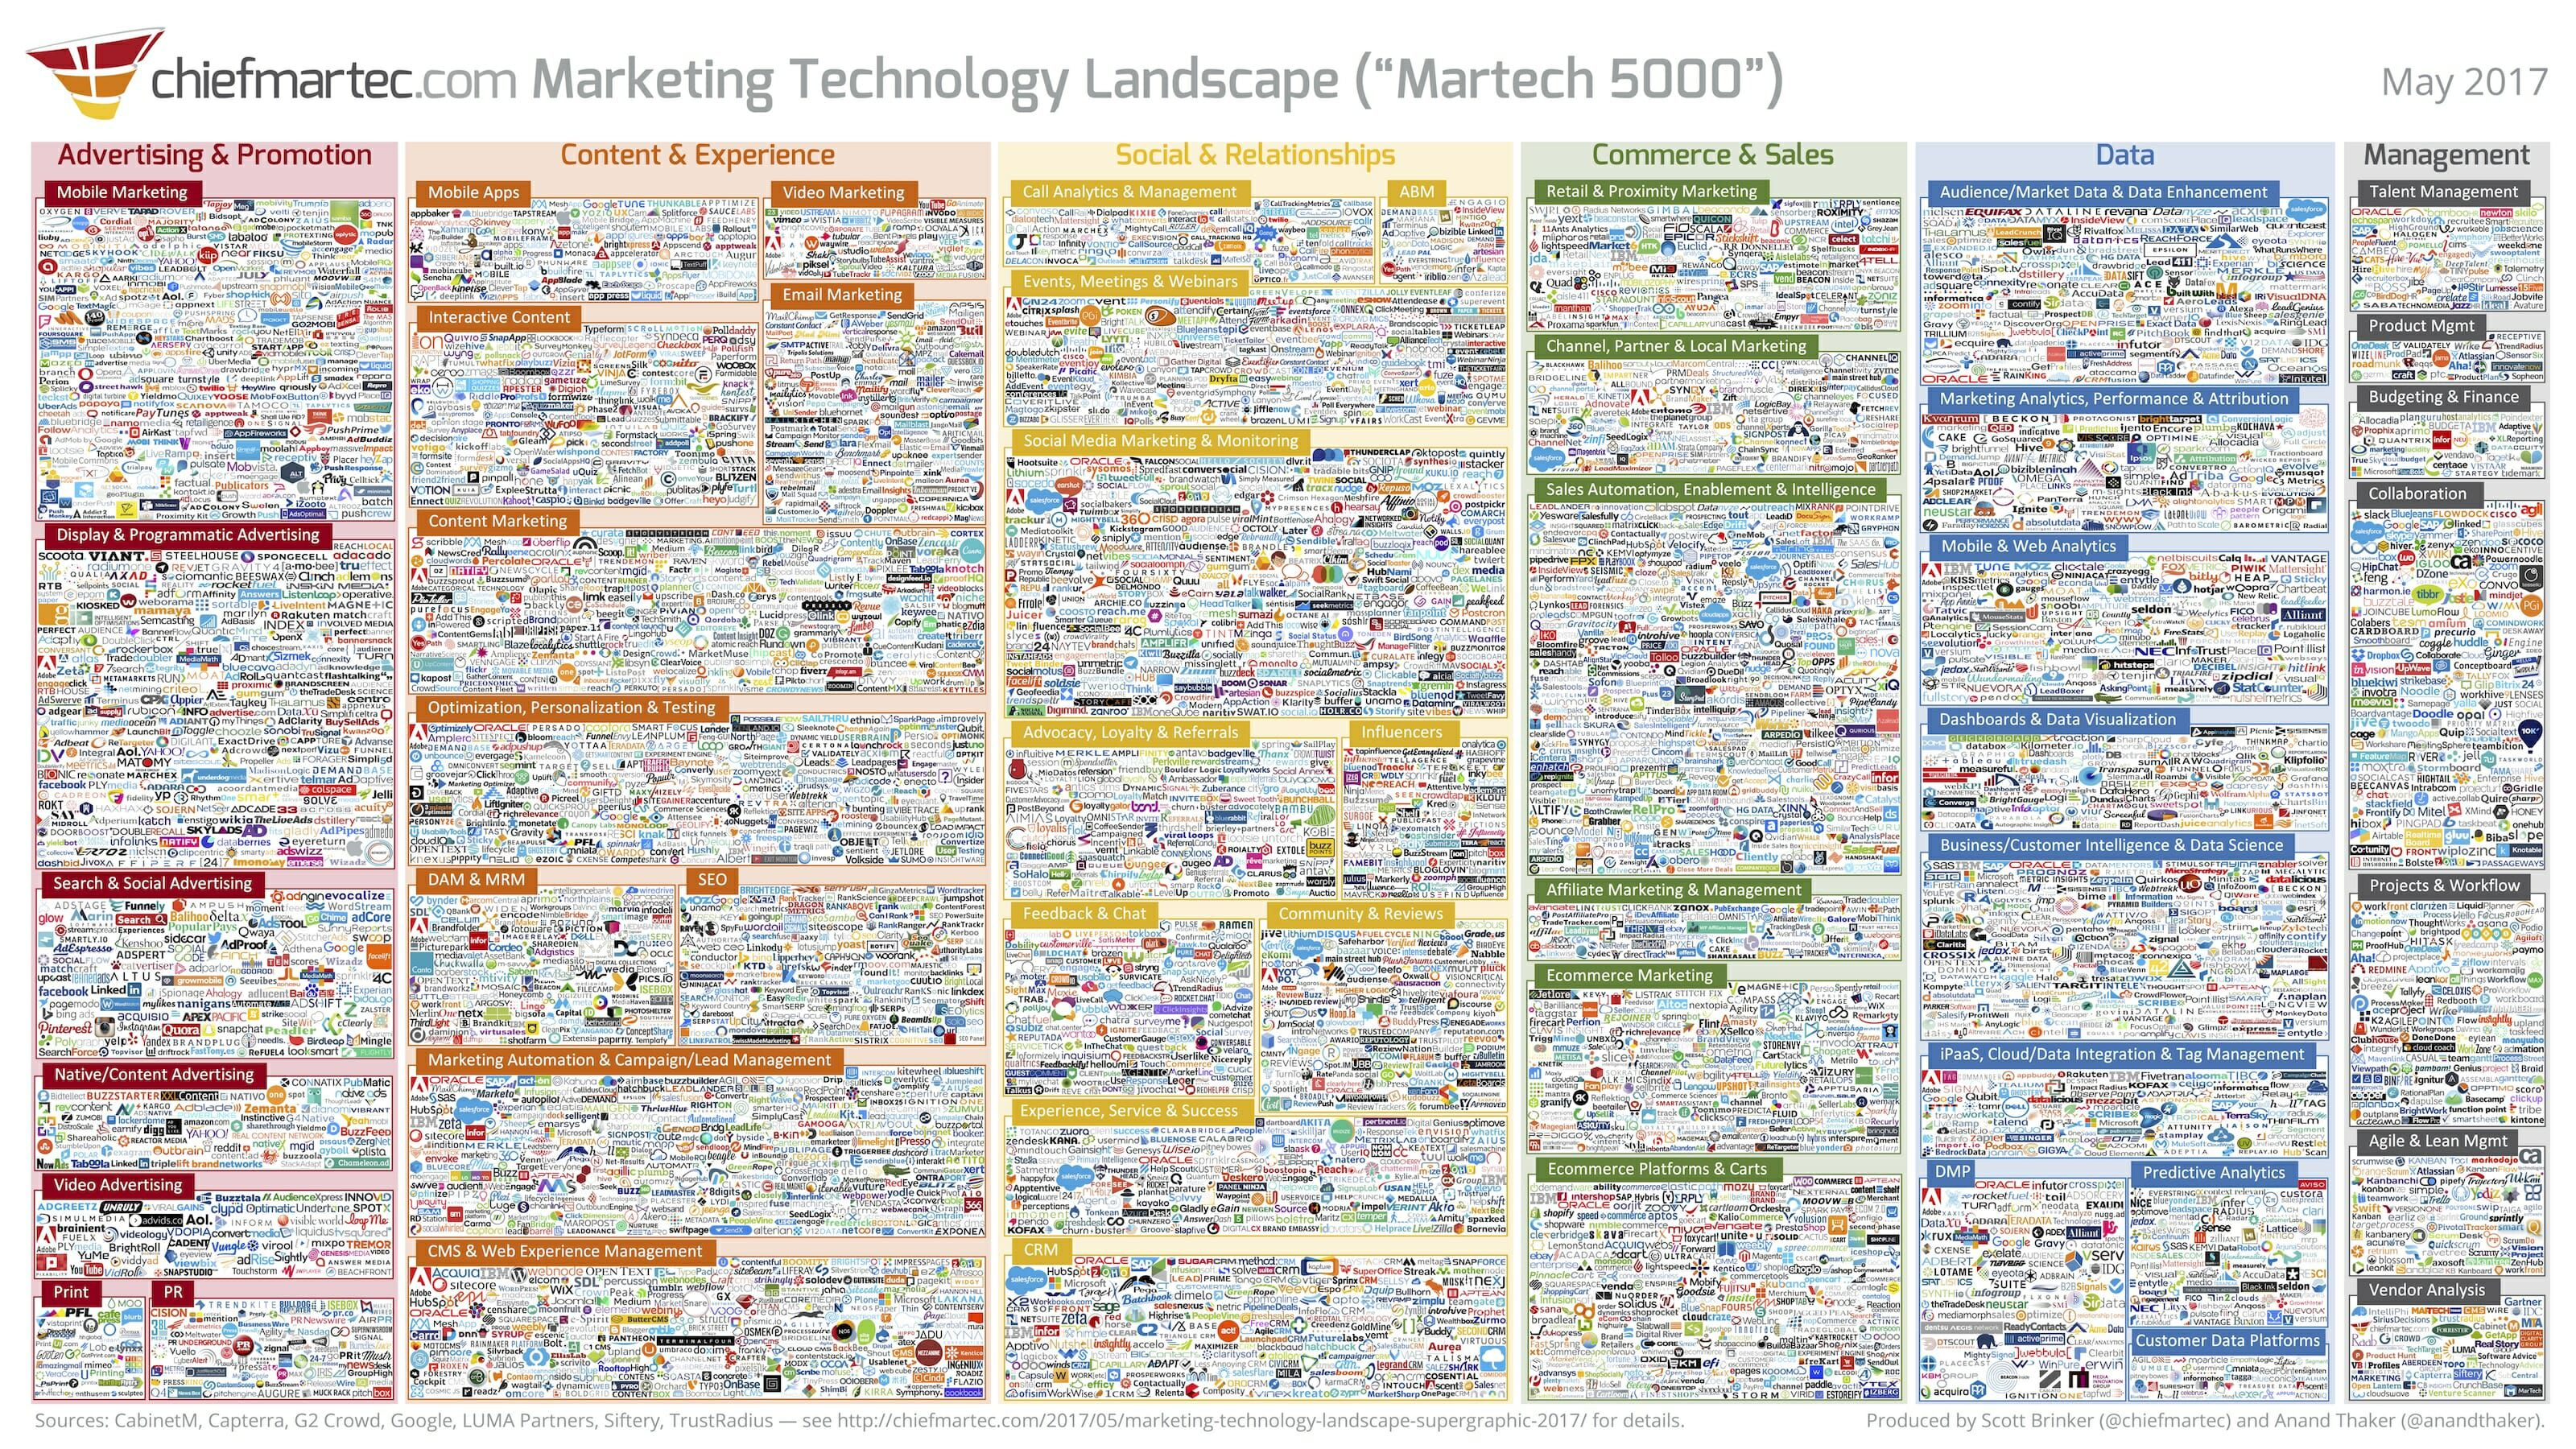 Martech stack - the marketing technology stacks by business function